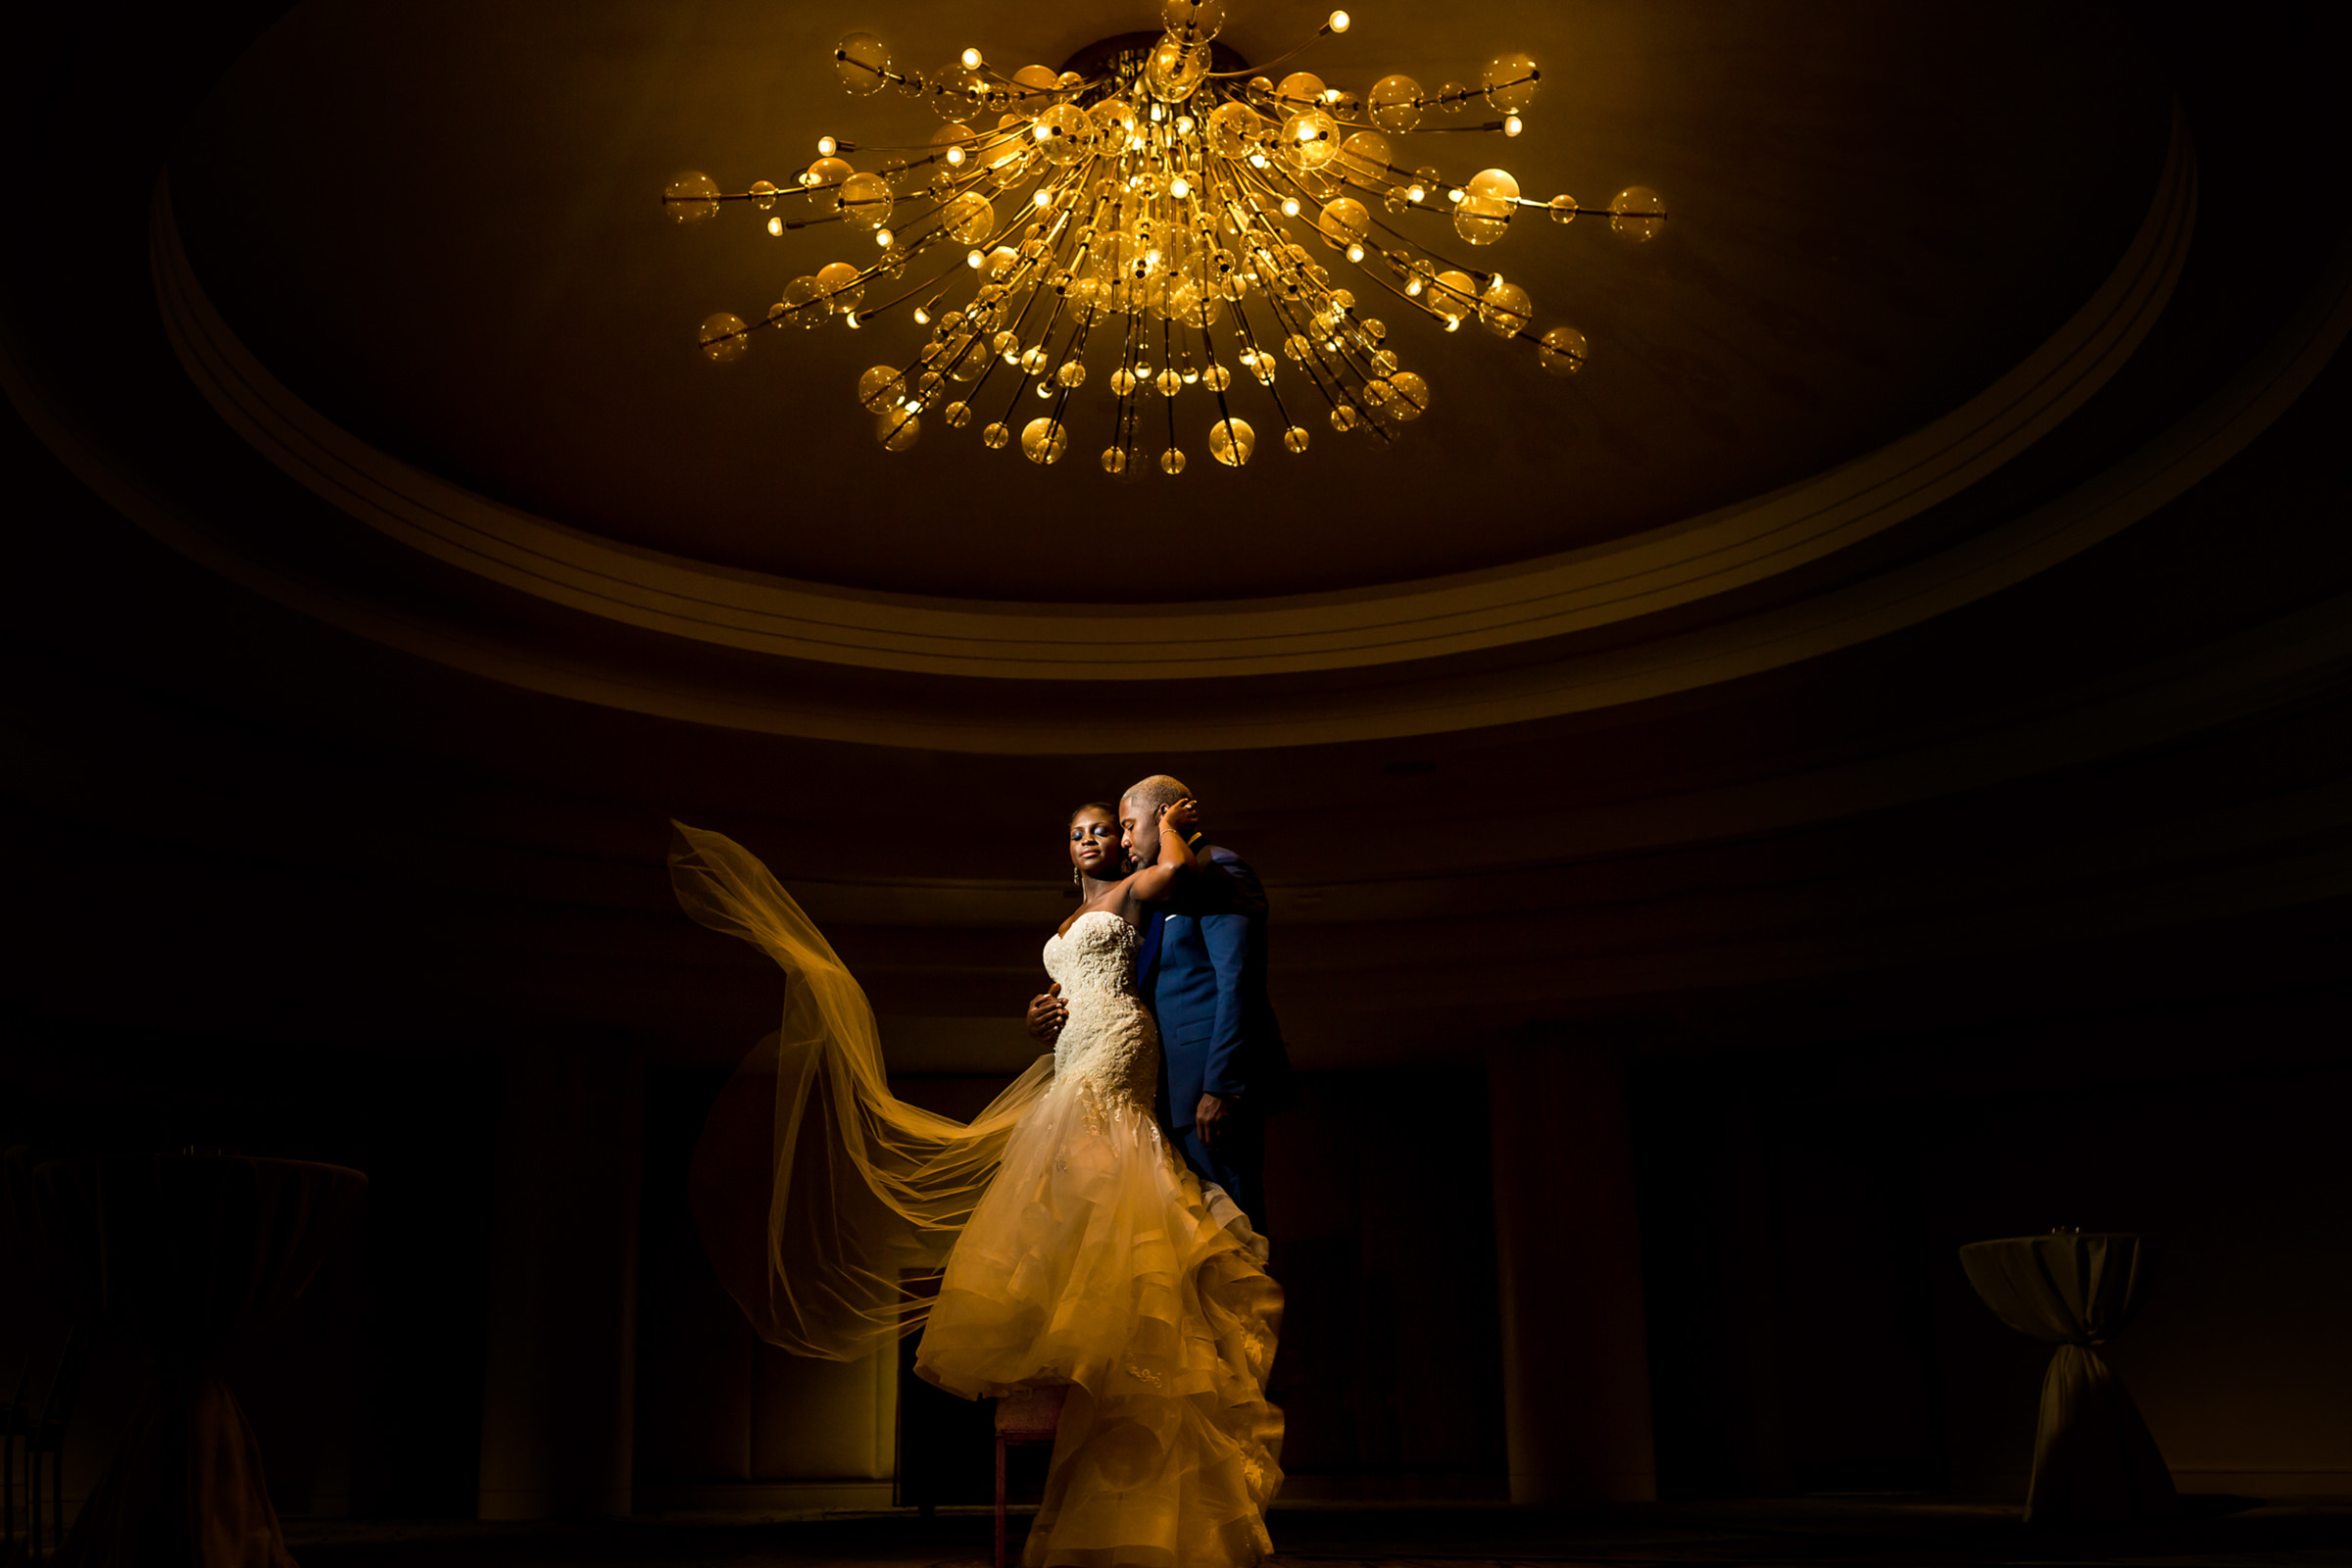 Bride and groom standing on chair under large chandelier - photo by Procopio Photography